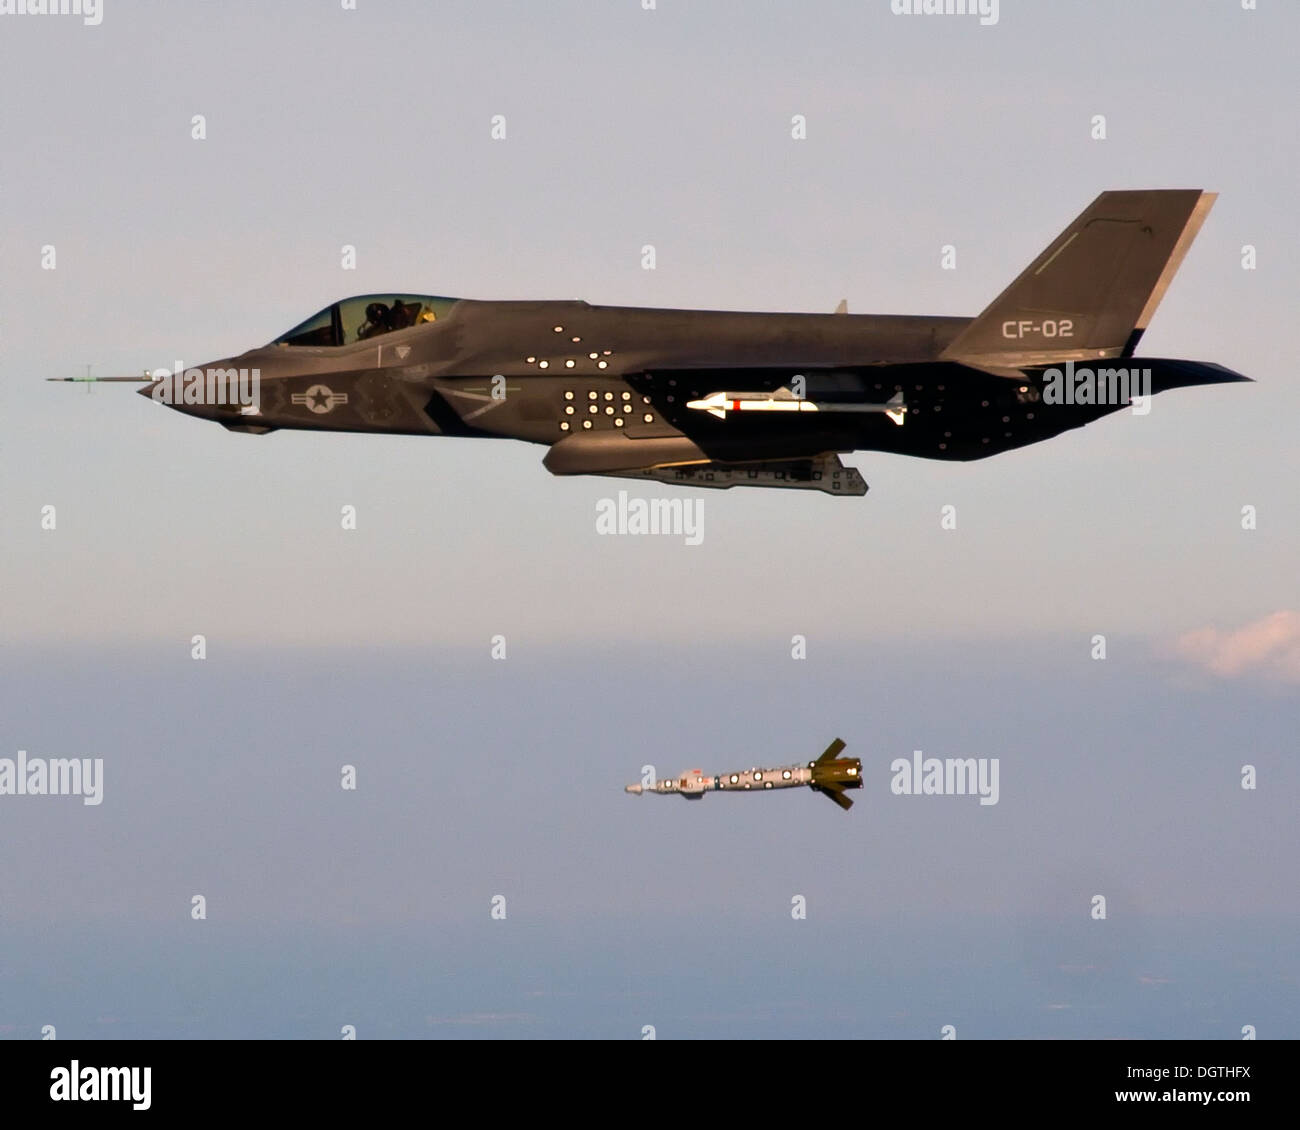 A US Marine Corps F-35C Lightning II Joint Strike Fighter stealth aircraft drops a 500-pound inert Guided Bomb Unit over the Atlantic test range October 22, 2013 Patuxent River, MD. - Stock Image